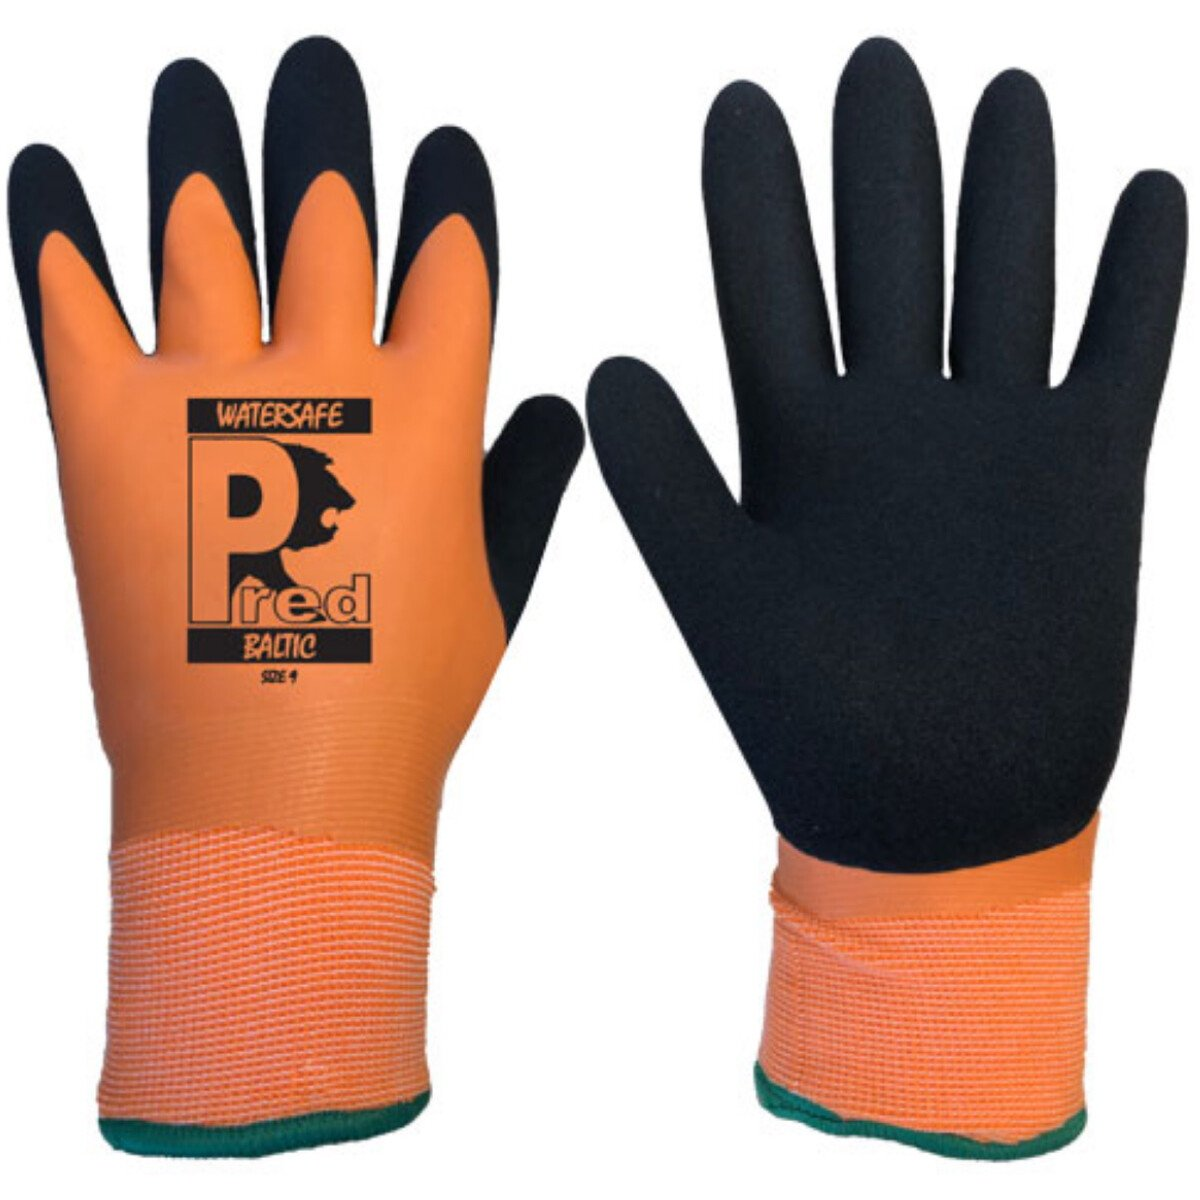 Predator WS4 Pred Baltic Watersafe Thermal Gloves